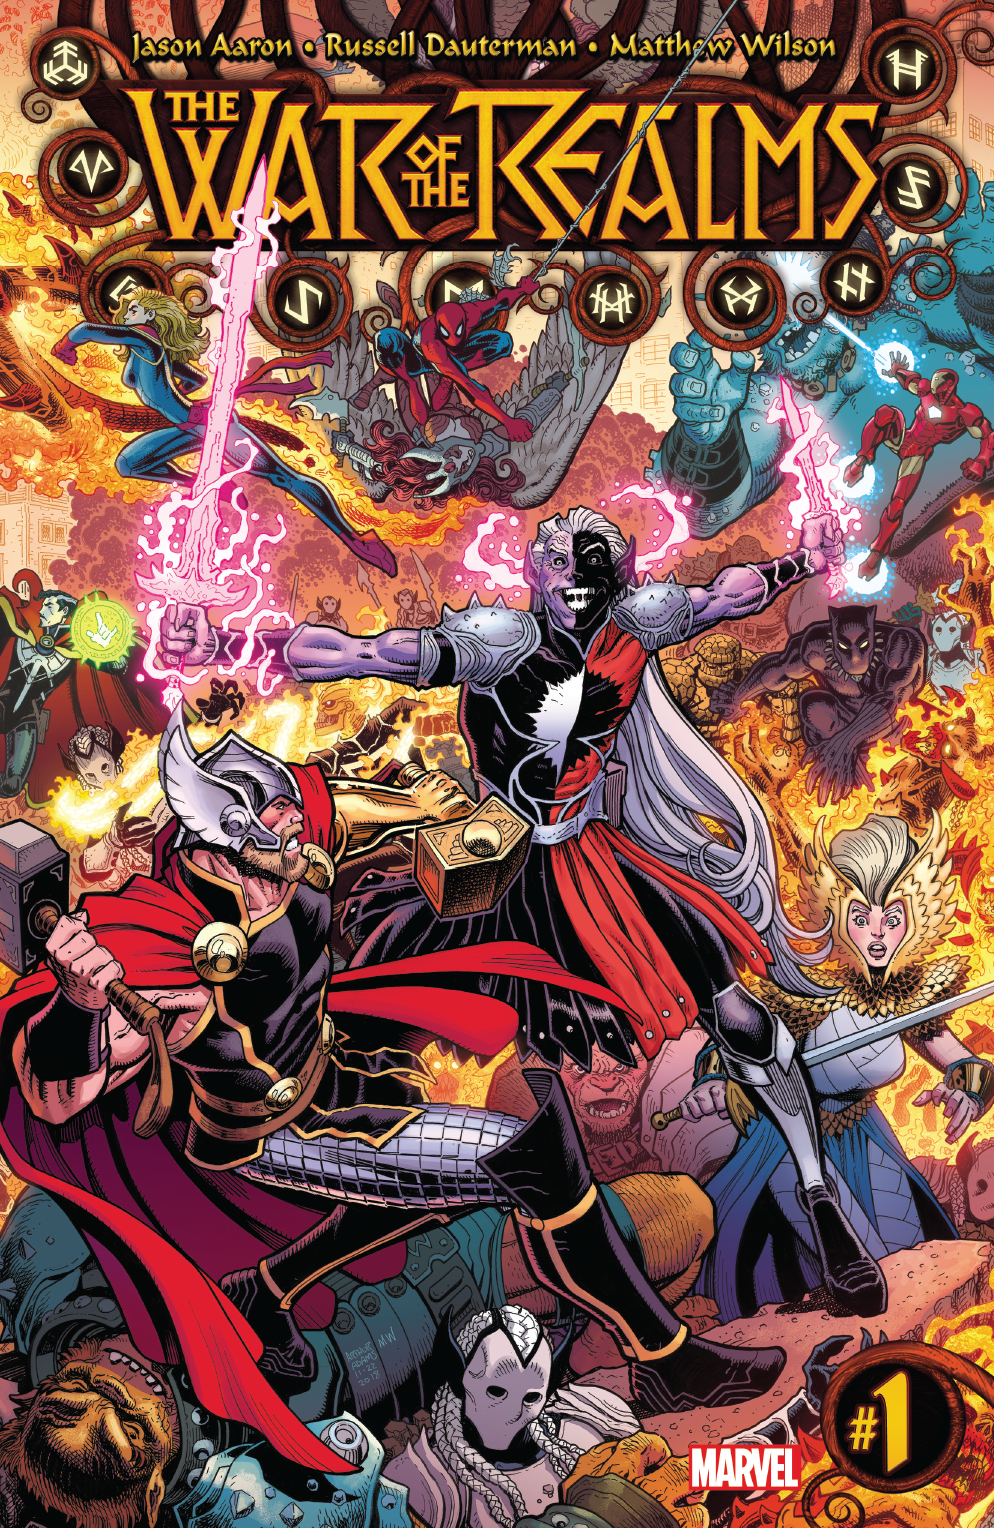 War of the Realms #1  is out 4/3/2019.